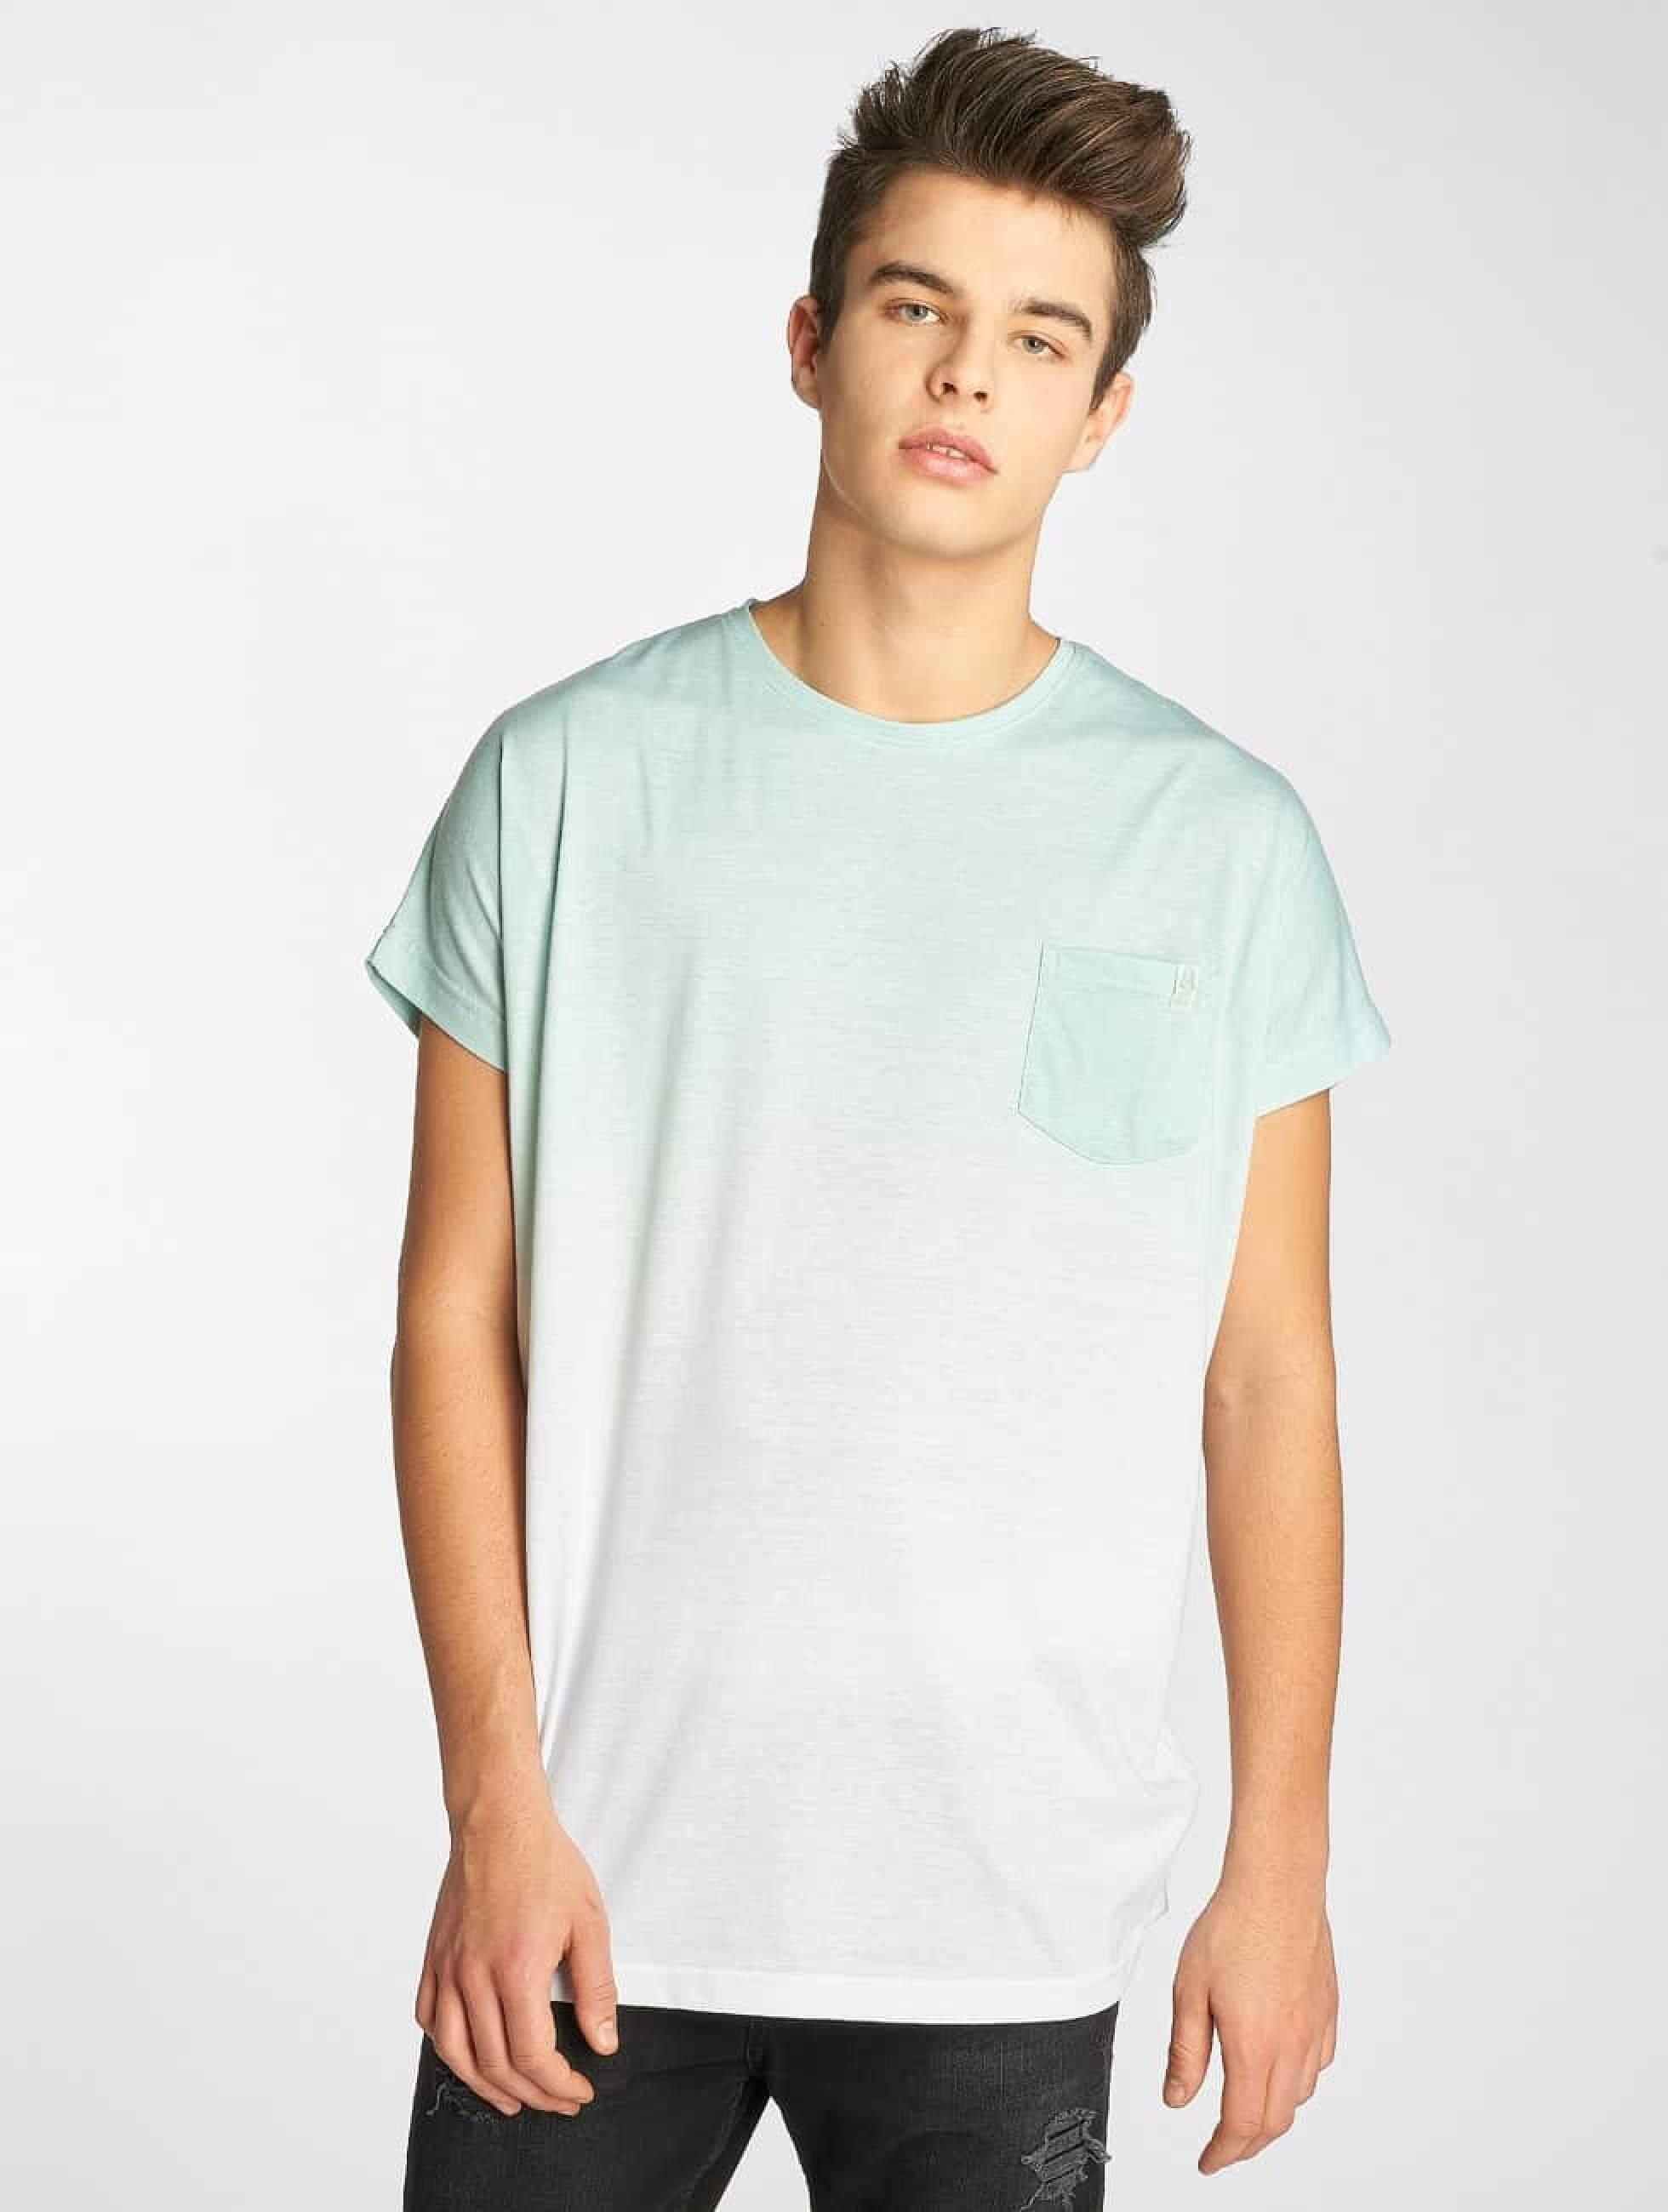 Just Rhyse / T-Shirt Tumbes in green 3XL